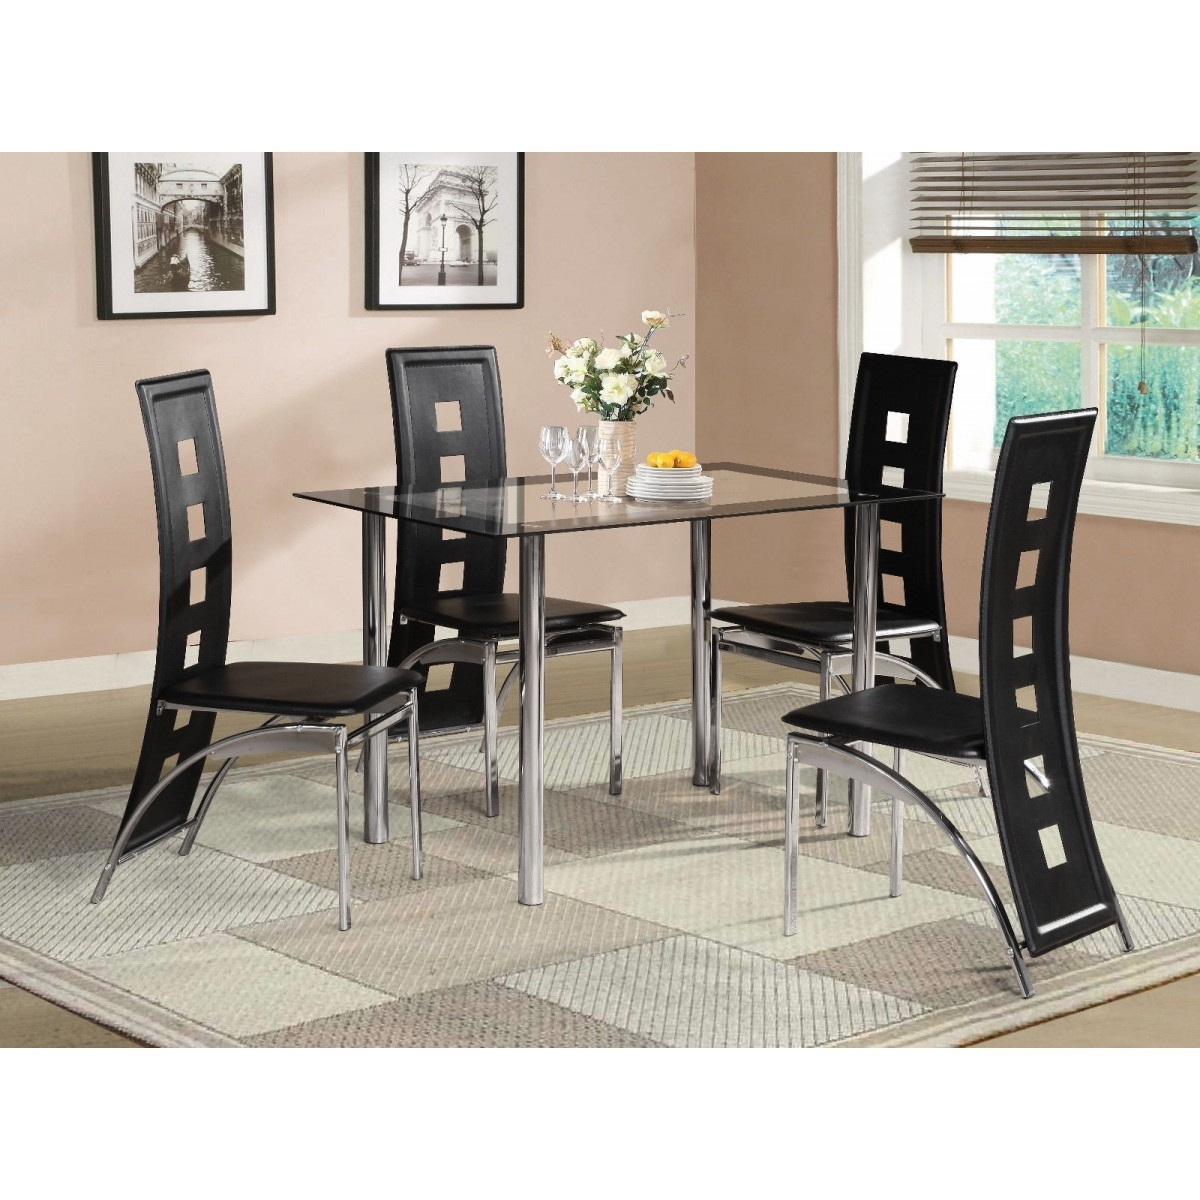 Black Glass Dining Tables With 6 Chairs Inside Favorite Black Glass Dining Room Table Set With 4 Or 6 Chairs – Home Done (View 6 of 25)